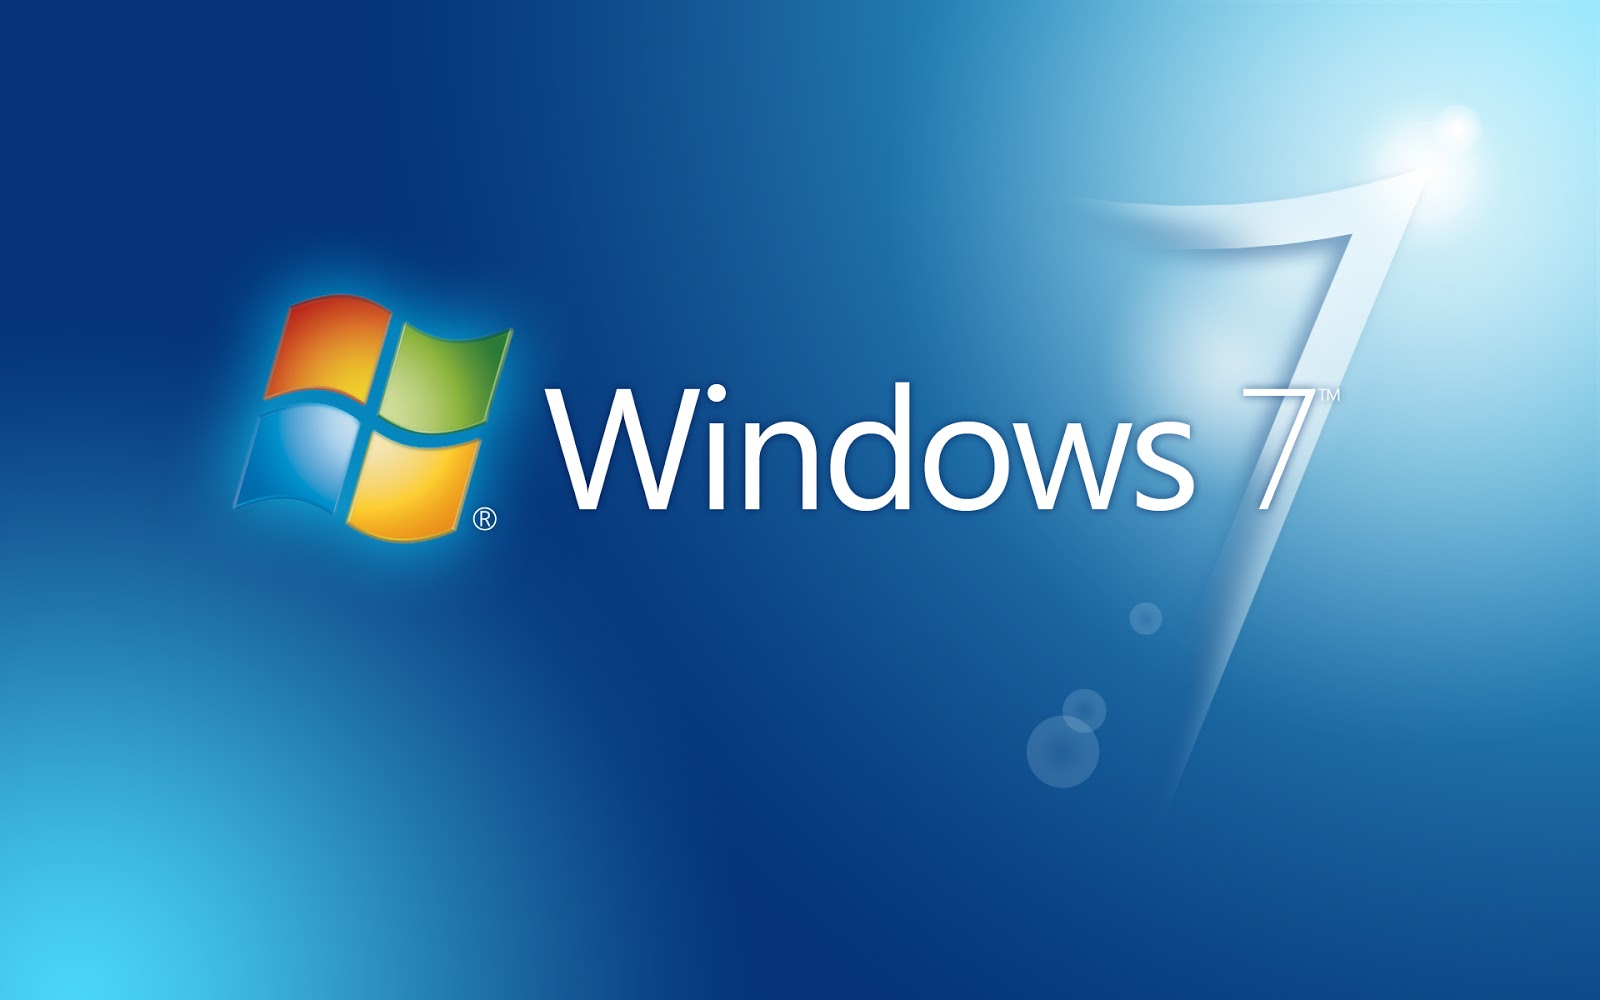 Windows 7 Windows 7 x64  full